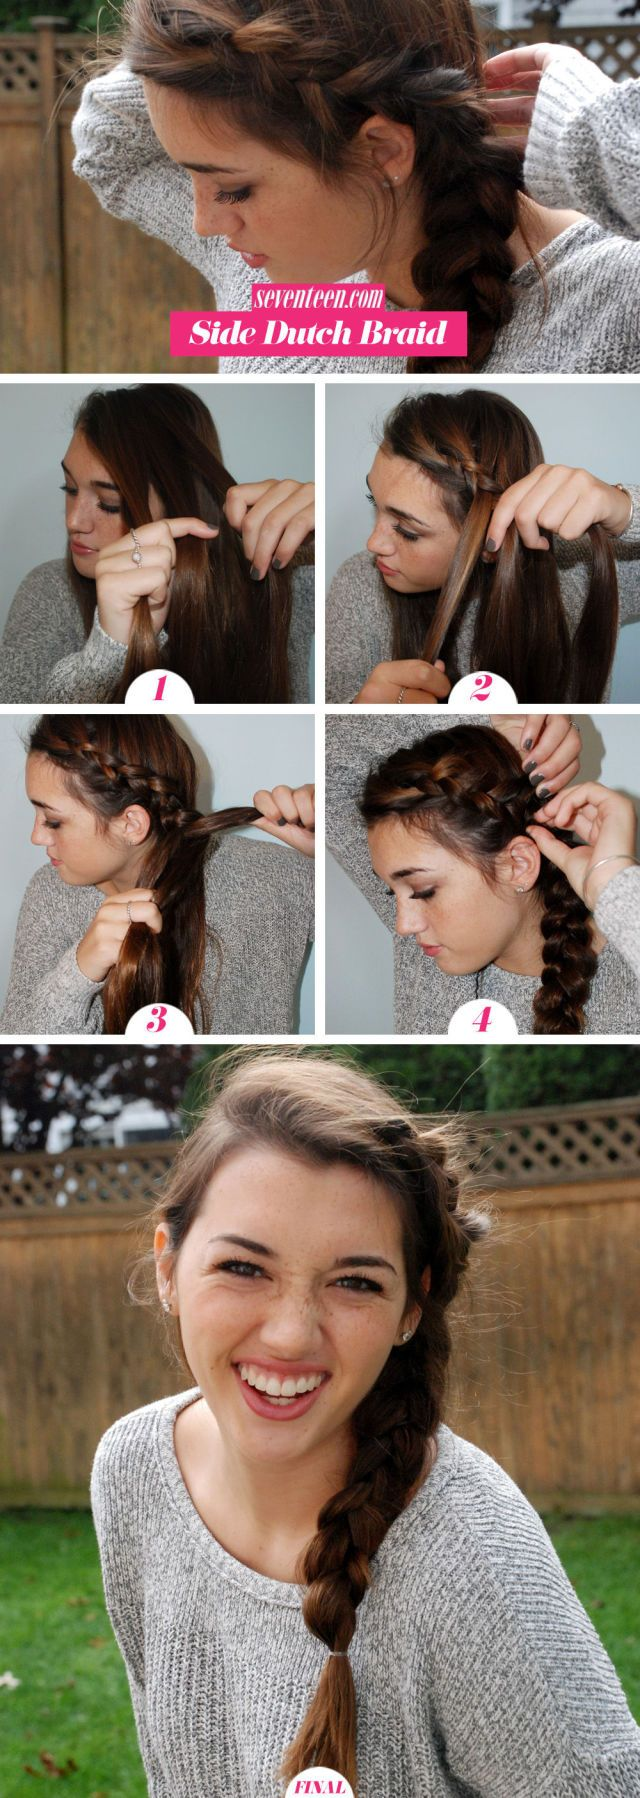 This Is Going to Be Your New Favorite Braid  - Seventeen.com